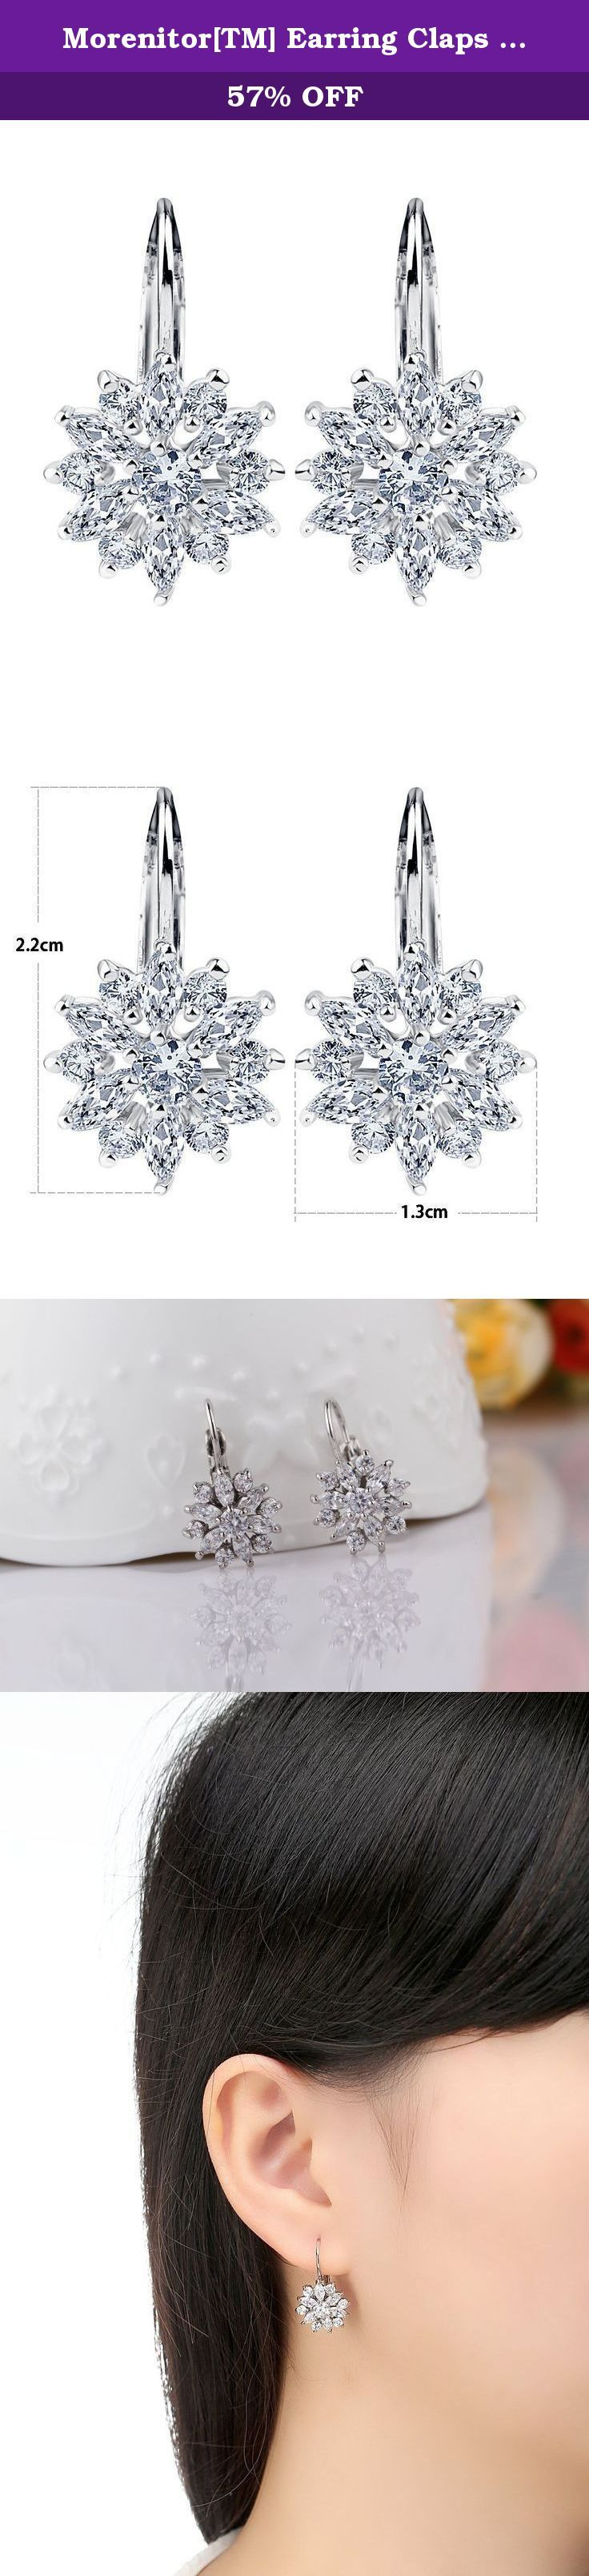 Morenitor[TM] Earring Claps 18K Gold Plated Cubic Zircon CZ Snowflake Stud Earrings For Girls. (Silver). Product Feature: Item Type:Jewelry Earrings Fine or Fashion:Fashion Gender:Women Material:White Gold plated Brass + AAA Cubic zirconium CZ.. Occasion:Wedding,Party,Daily Wearring Packing: One Pair Earring. Free Shipping by ePacket, Arrive in 7-15 days. About Meterial of Products It uses the environmental protection material quality. All the items undergoes numerous checks before it on...